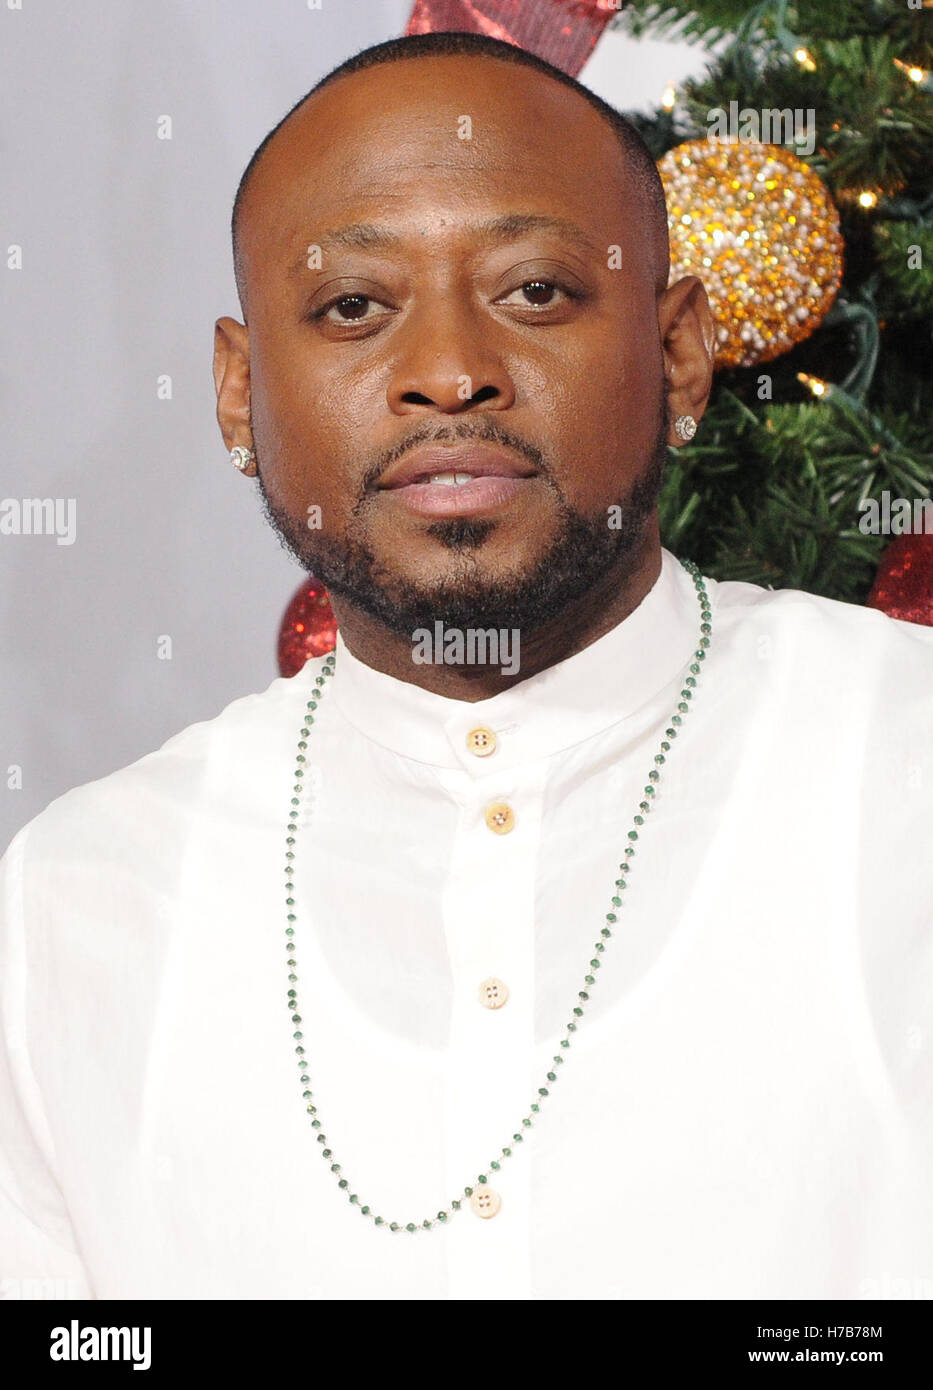 Westwood, CA, USA. 29Th sep 2016. 03 novembre 2016 - Westwood, Californie. Omar Epps. Première de l'Universelle Photo Stock